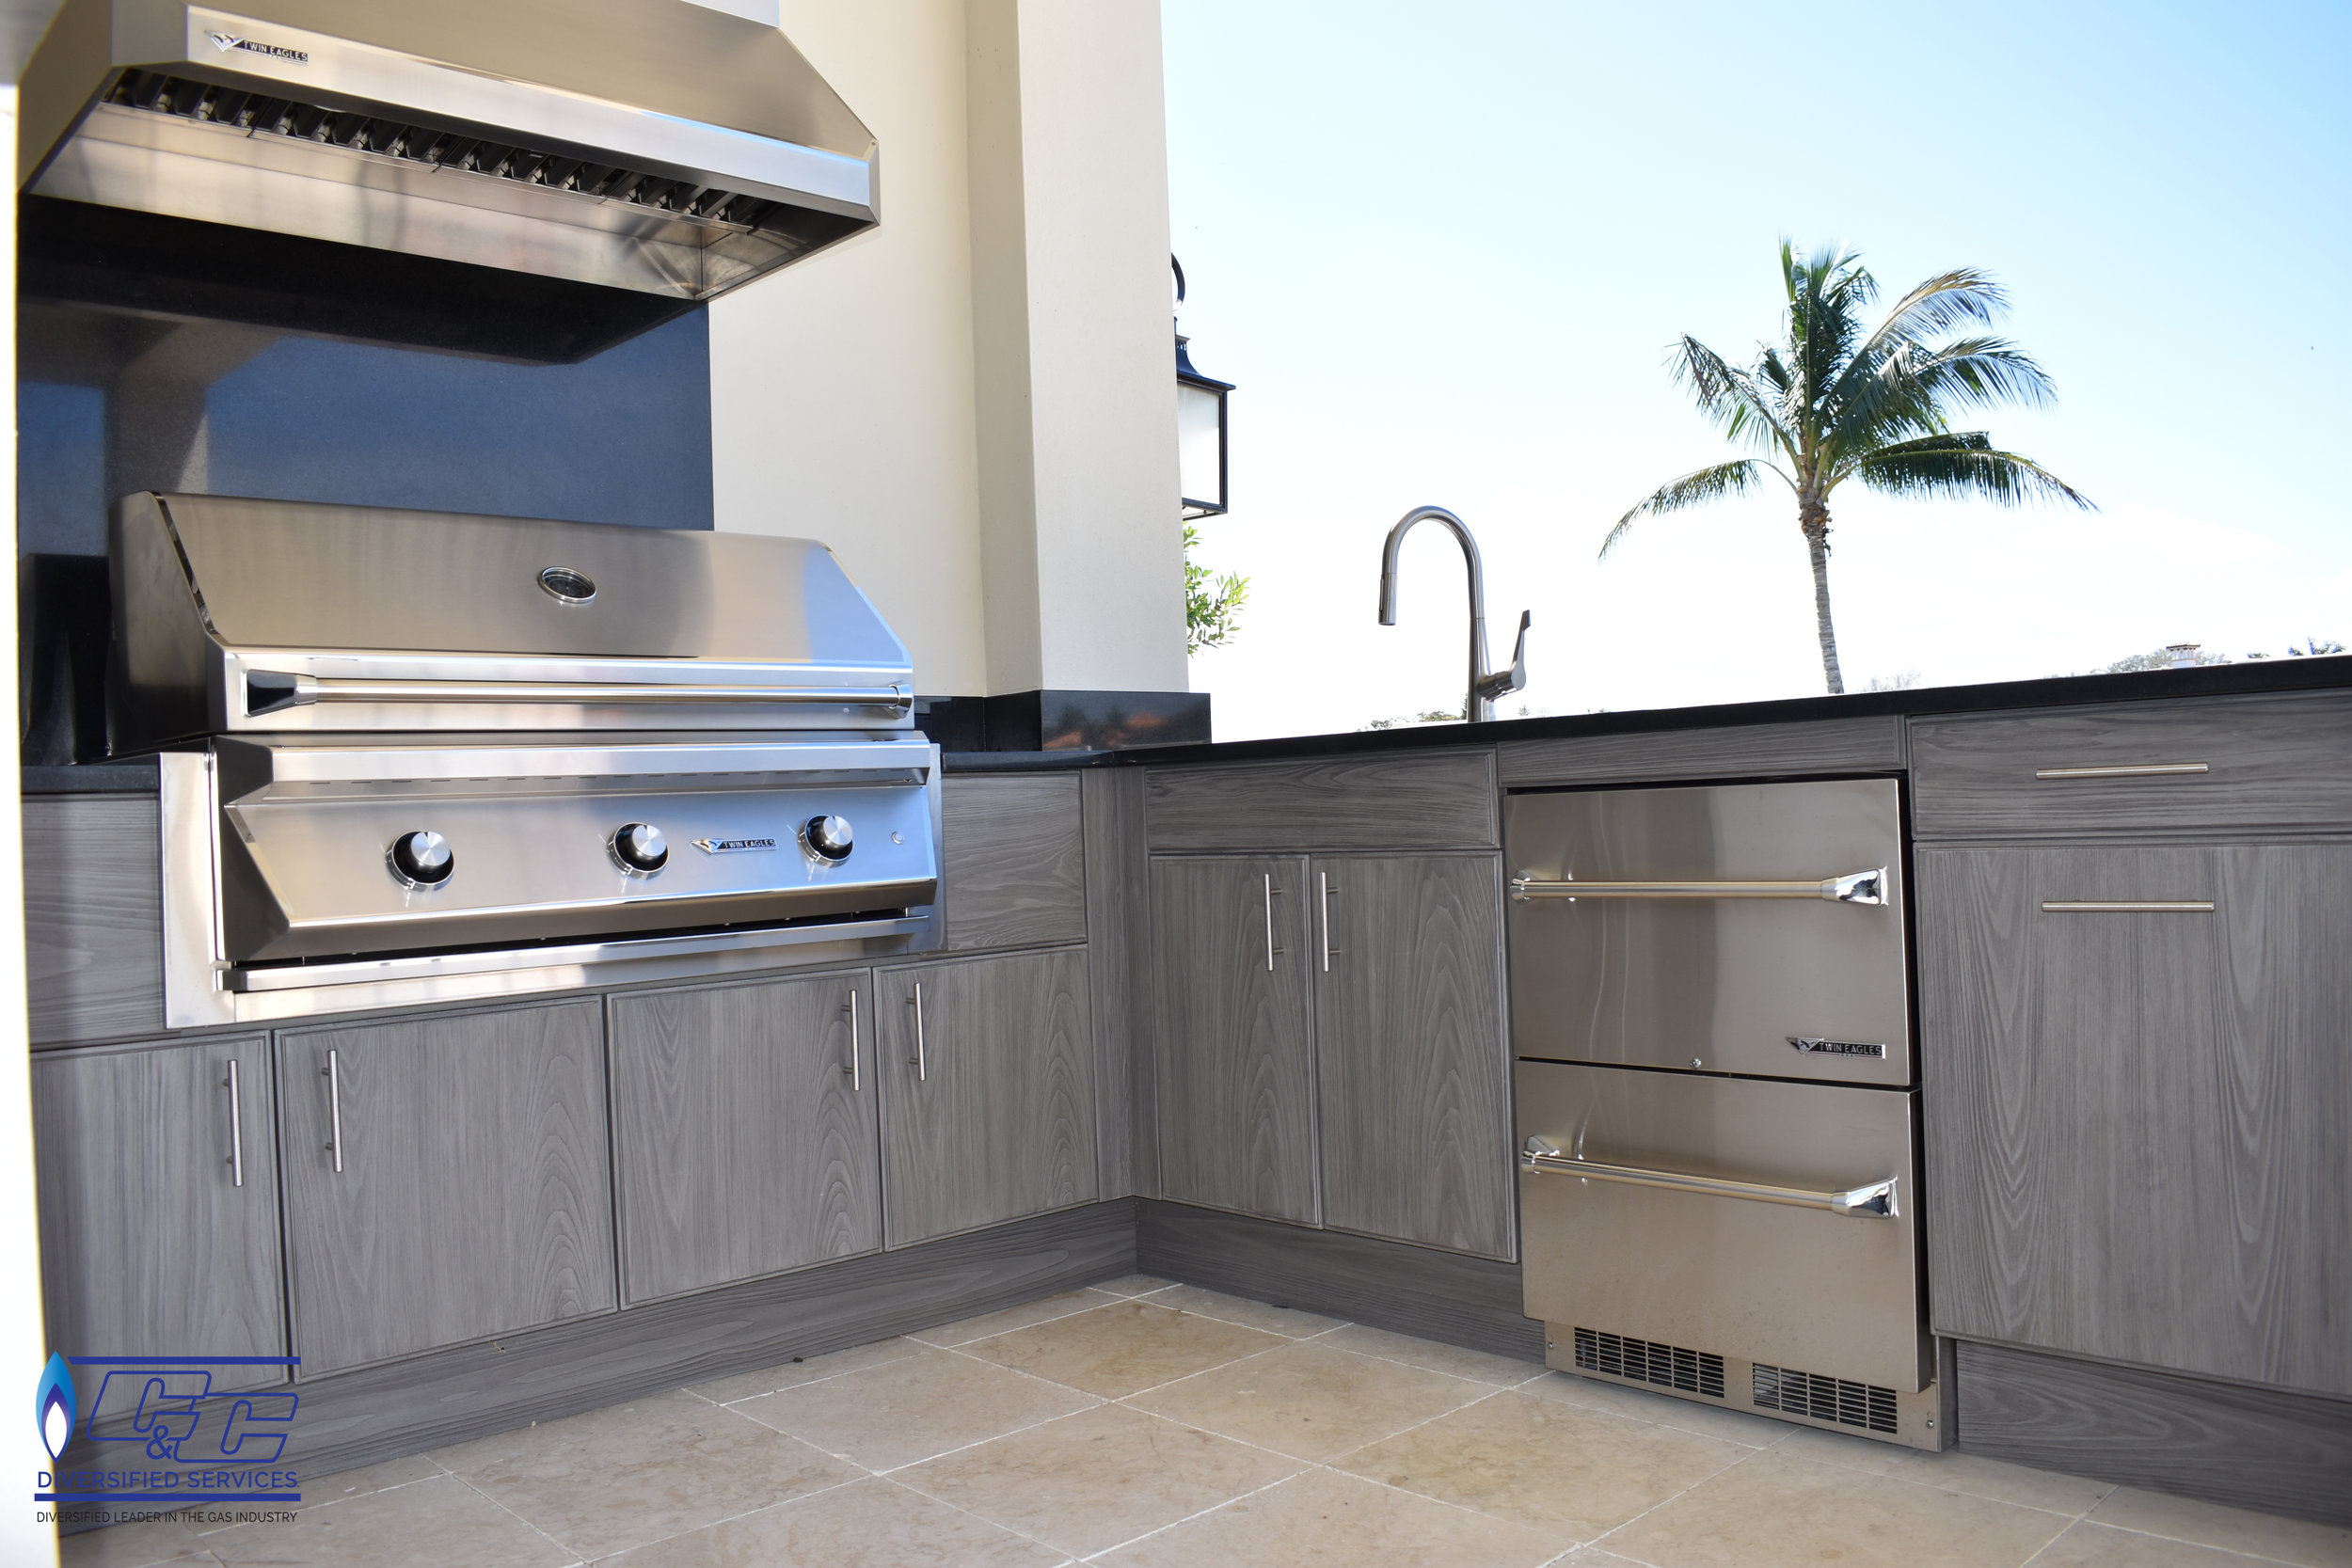 """Twin Eagles 42"""" Grill, Vent Hood, and Outdoor Two-Drawer Refrigerator. Stainless Steel Under-Mount Sink with Faucet"""